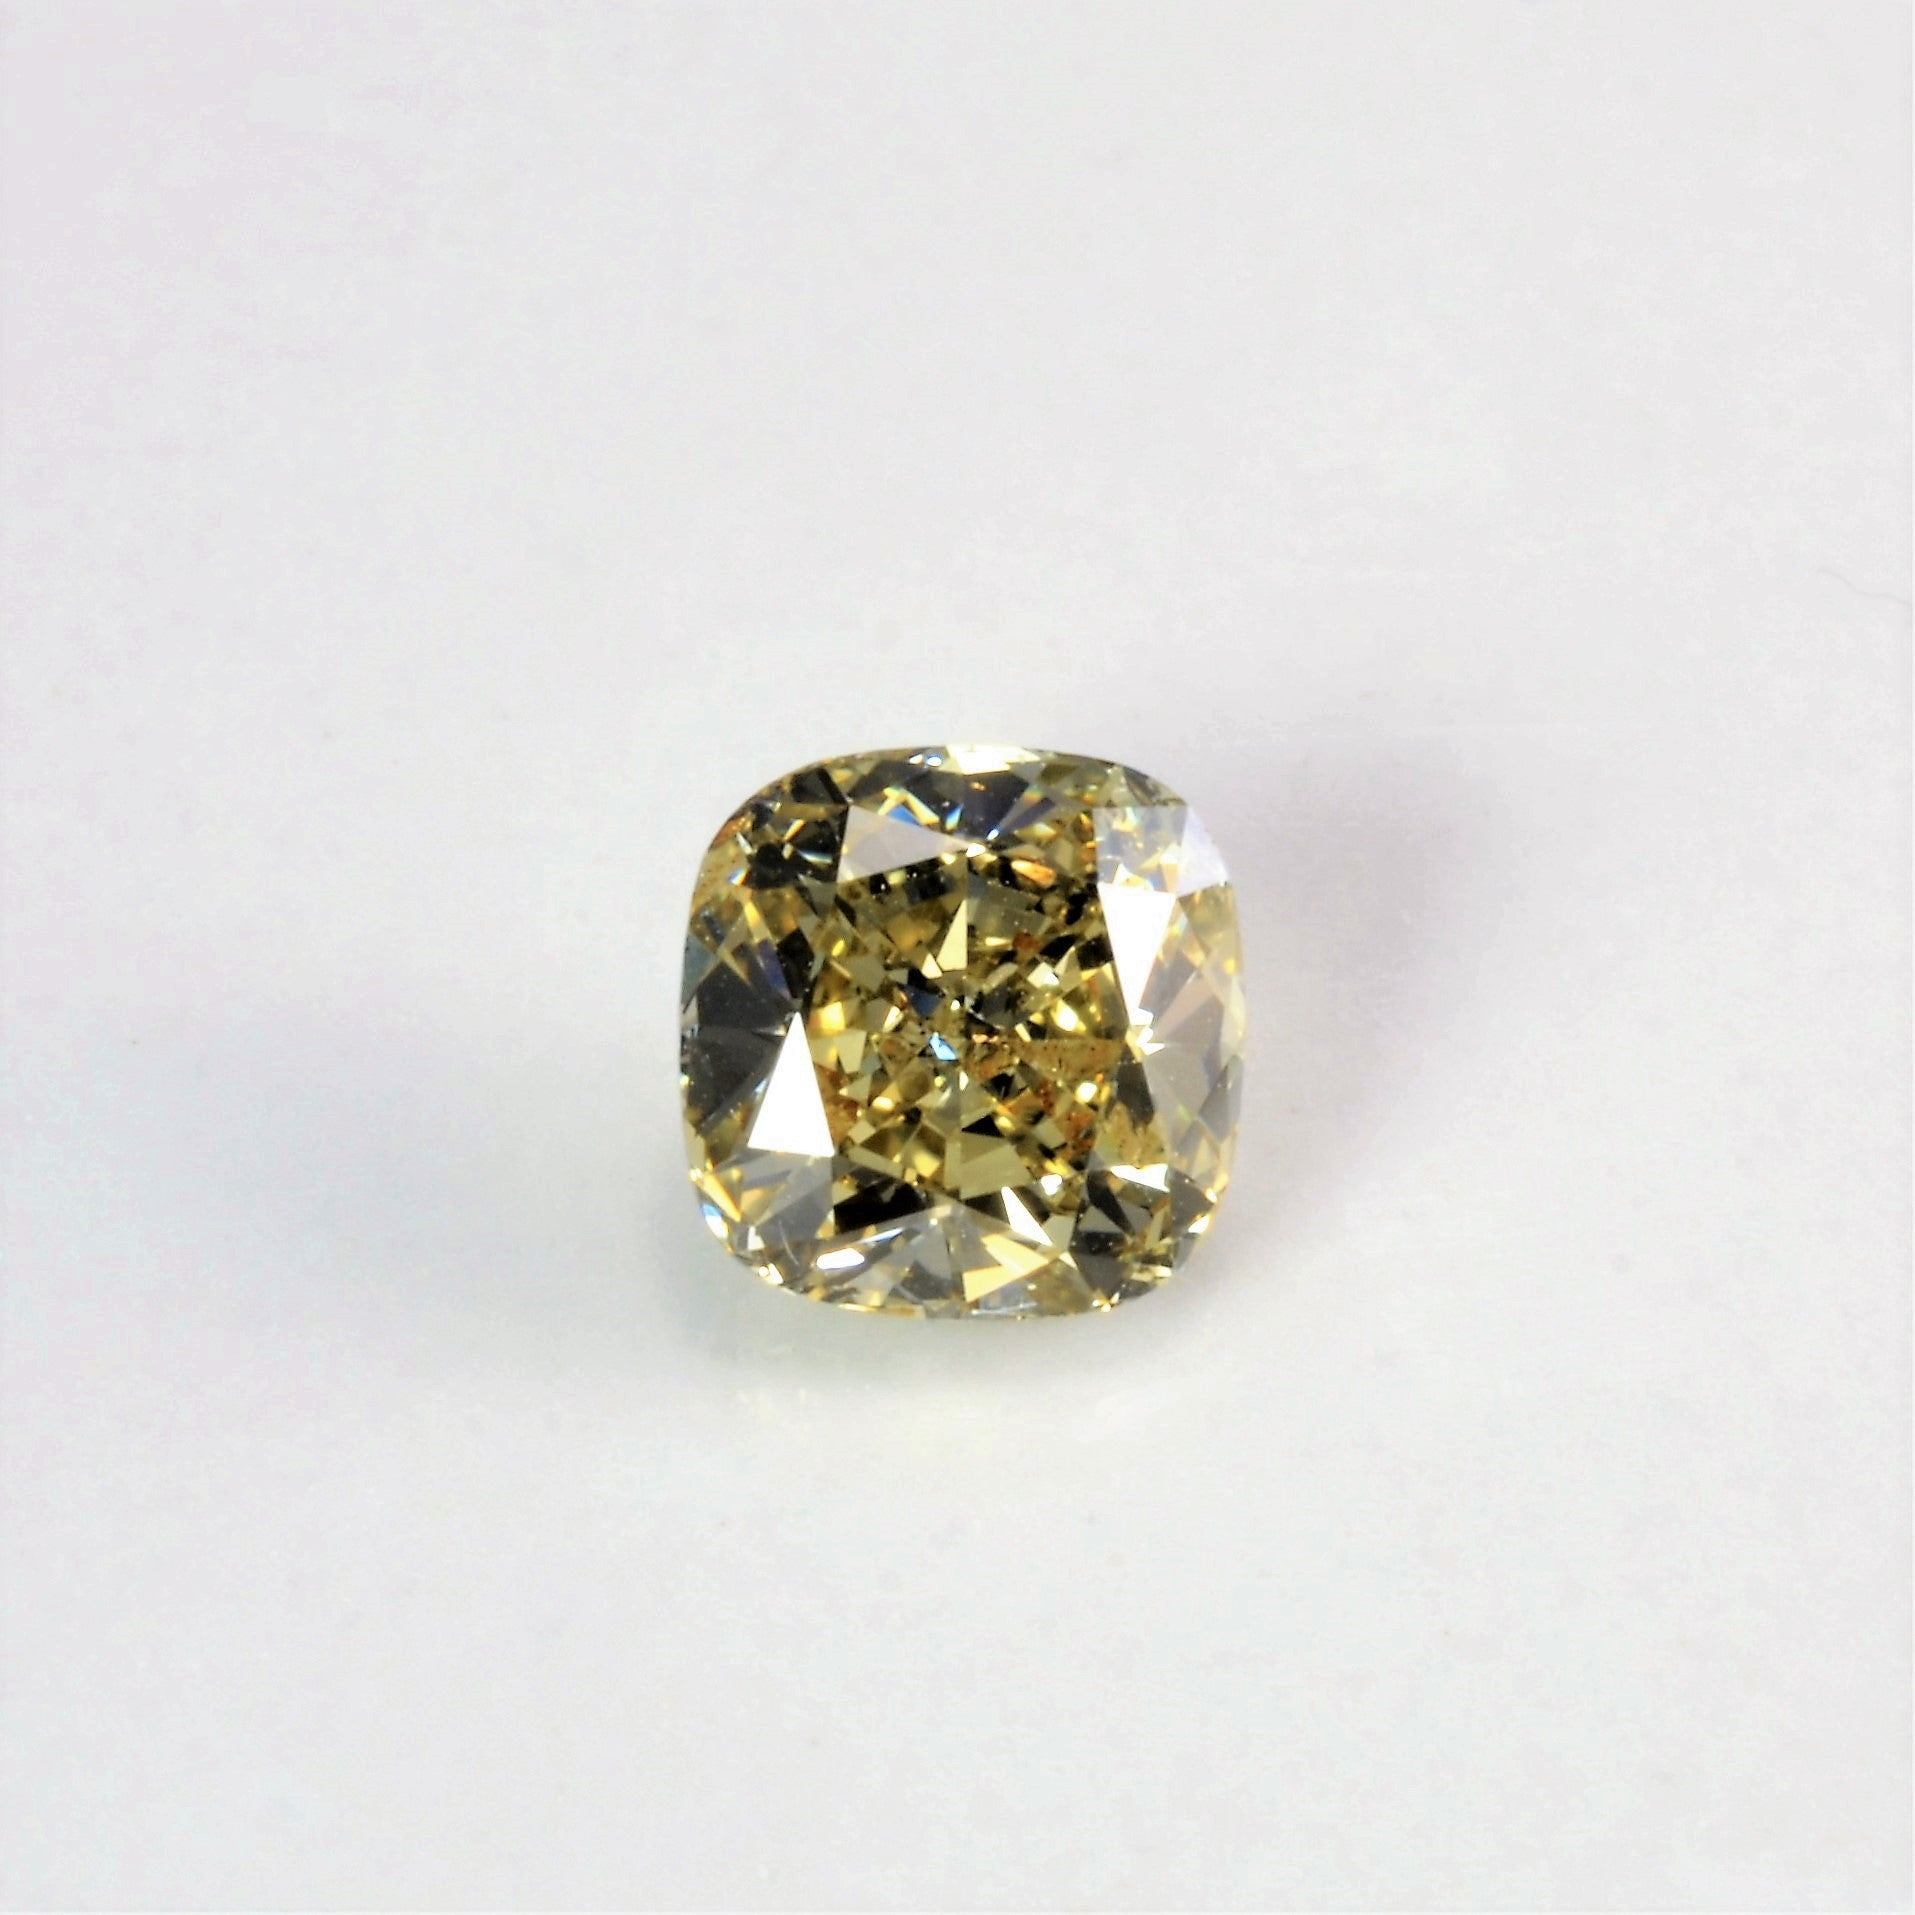 Cushion Cut Fancy Yellow Loose Diamond | 0.91 ct |